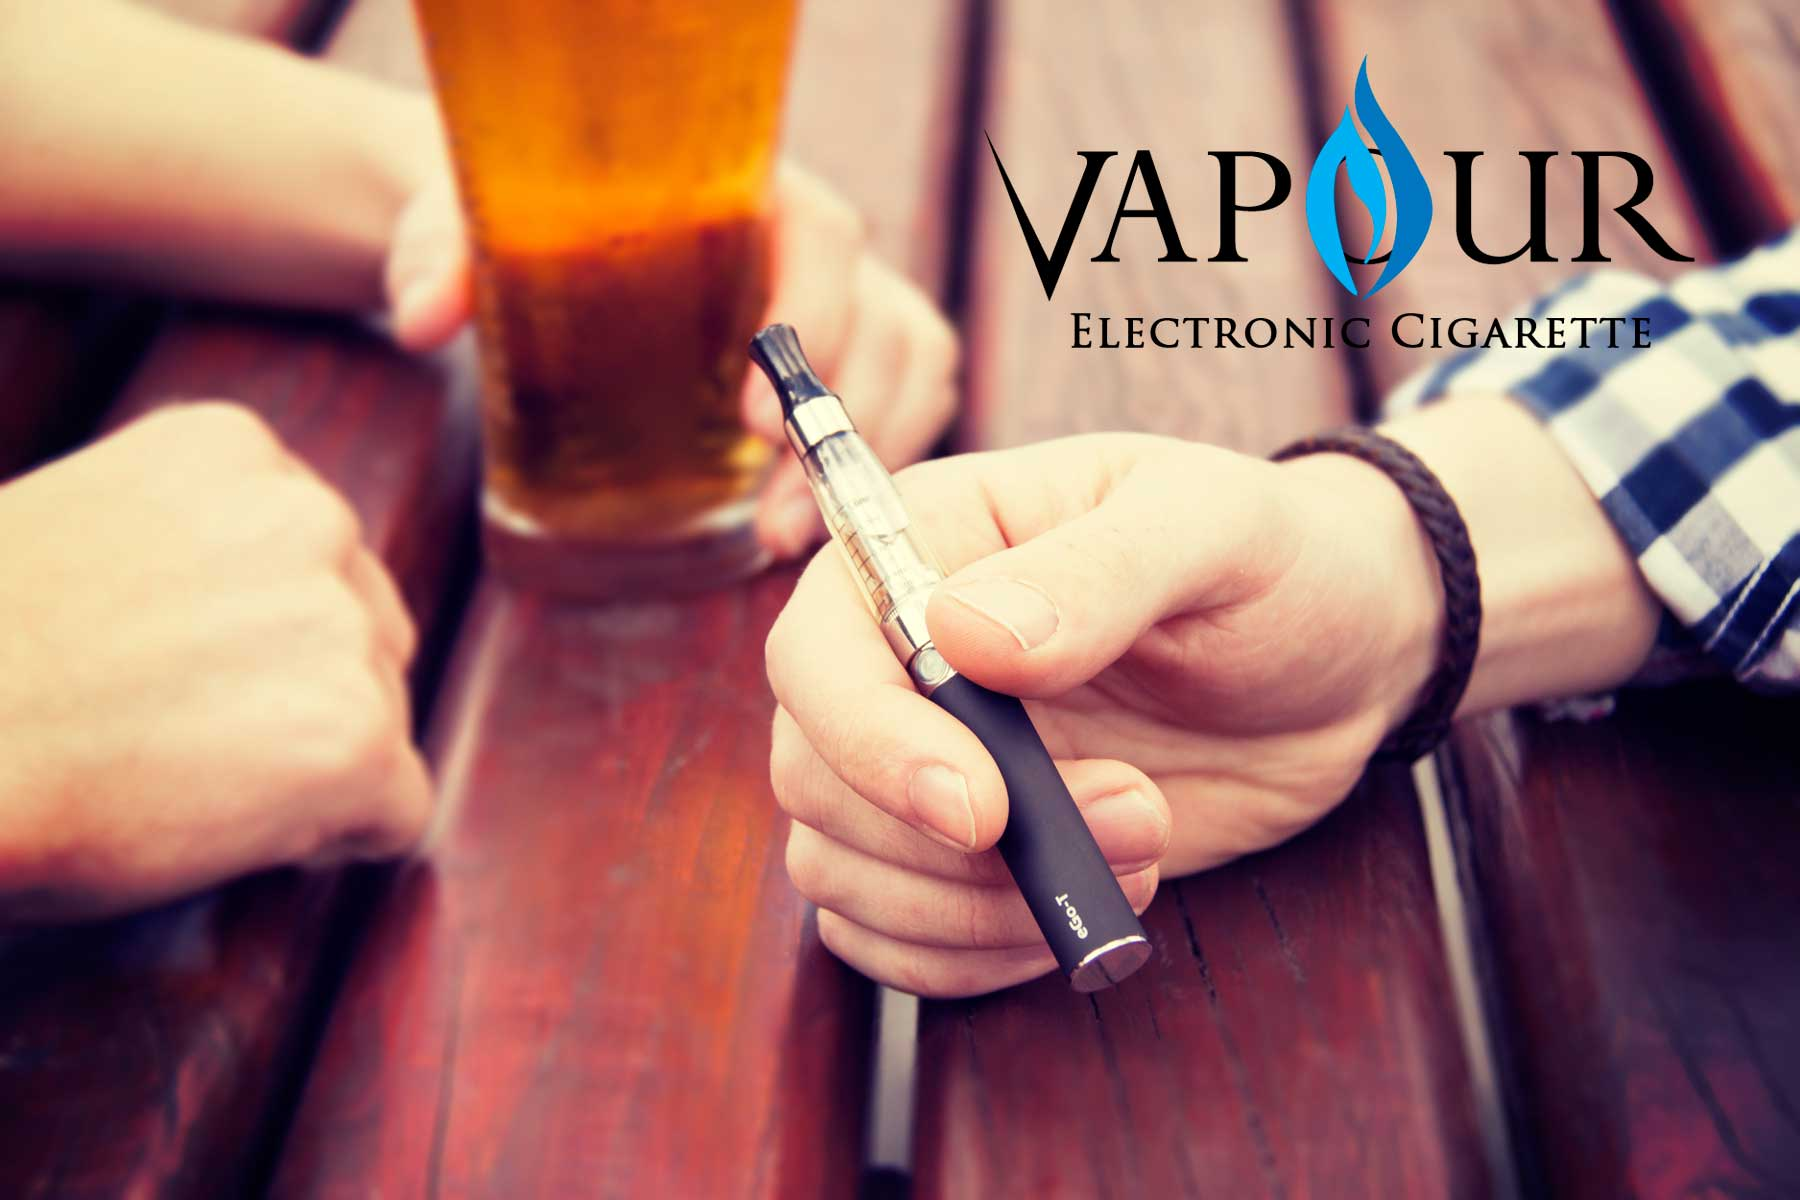 15-Vapour-Electronic-Cigarette-Hand-Pub-Commercial-Philip-Murray-Photography